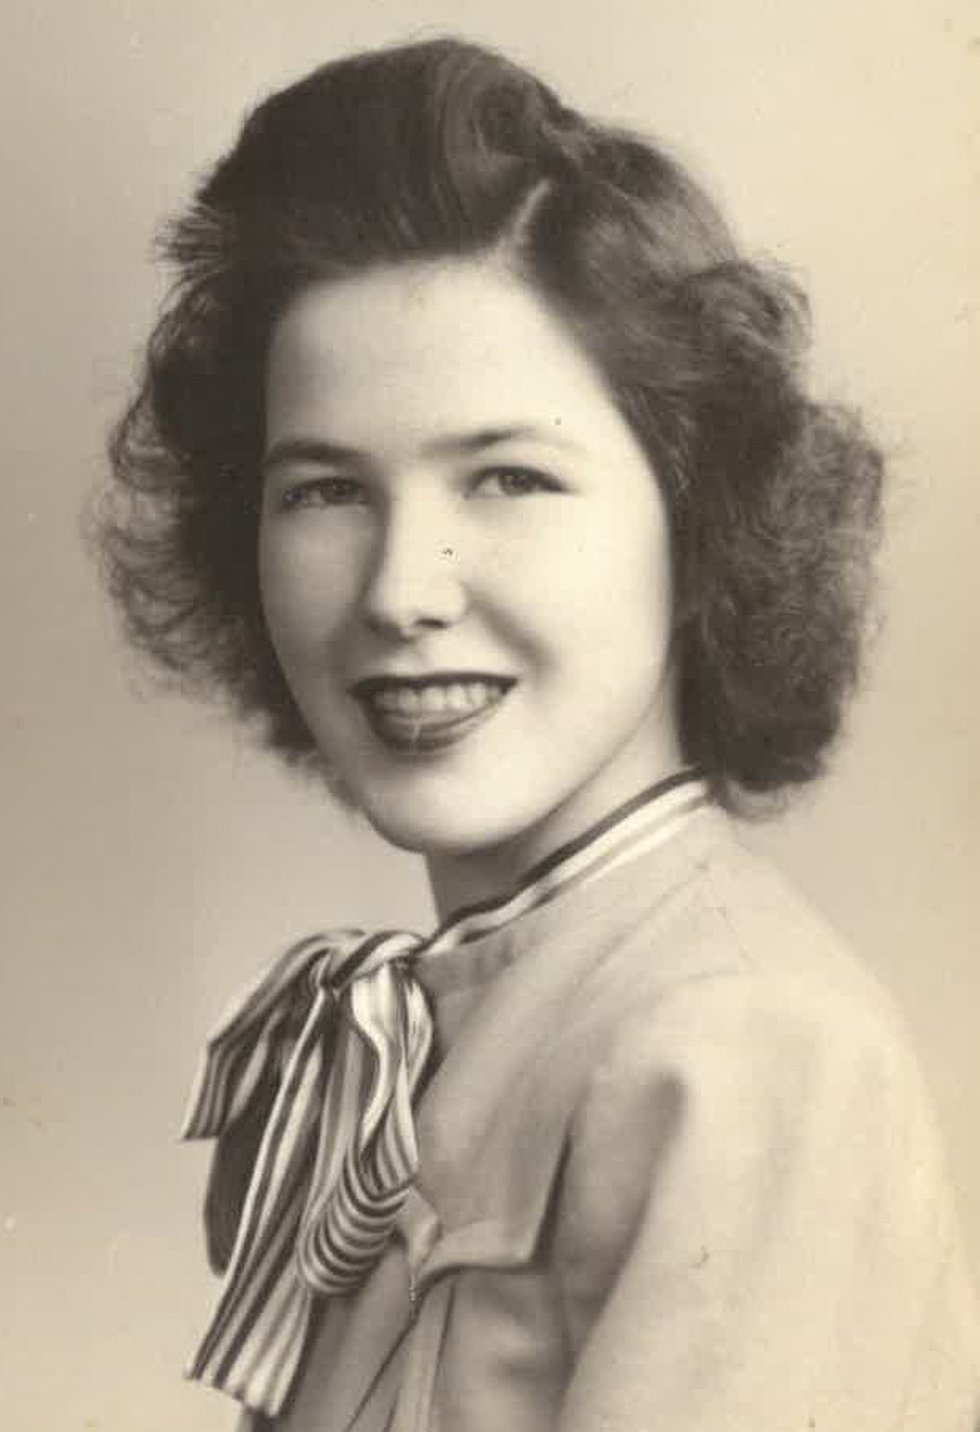 Rosemary Elizabeth Dow, 94, passed away on Thursday, September 23, 2021 at Maplewood Campus in...